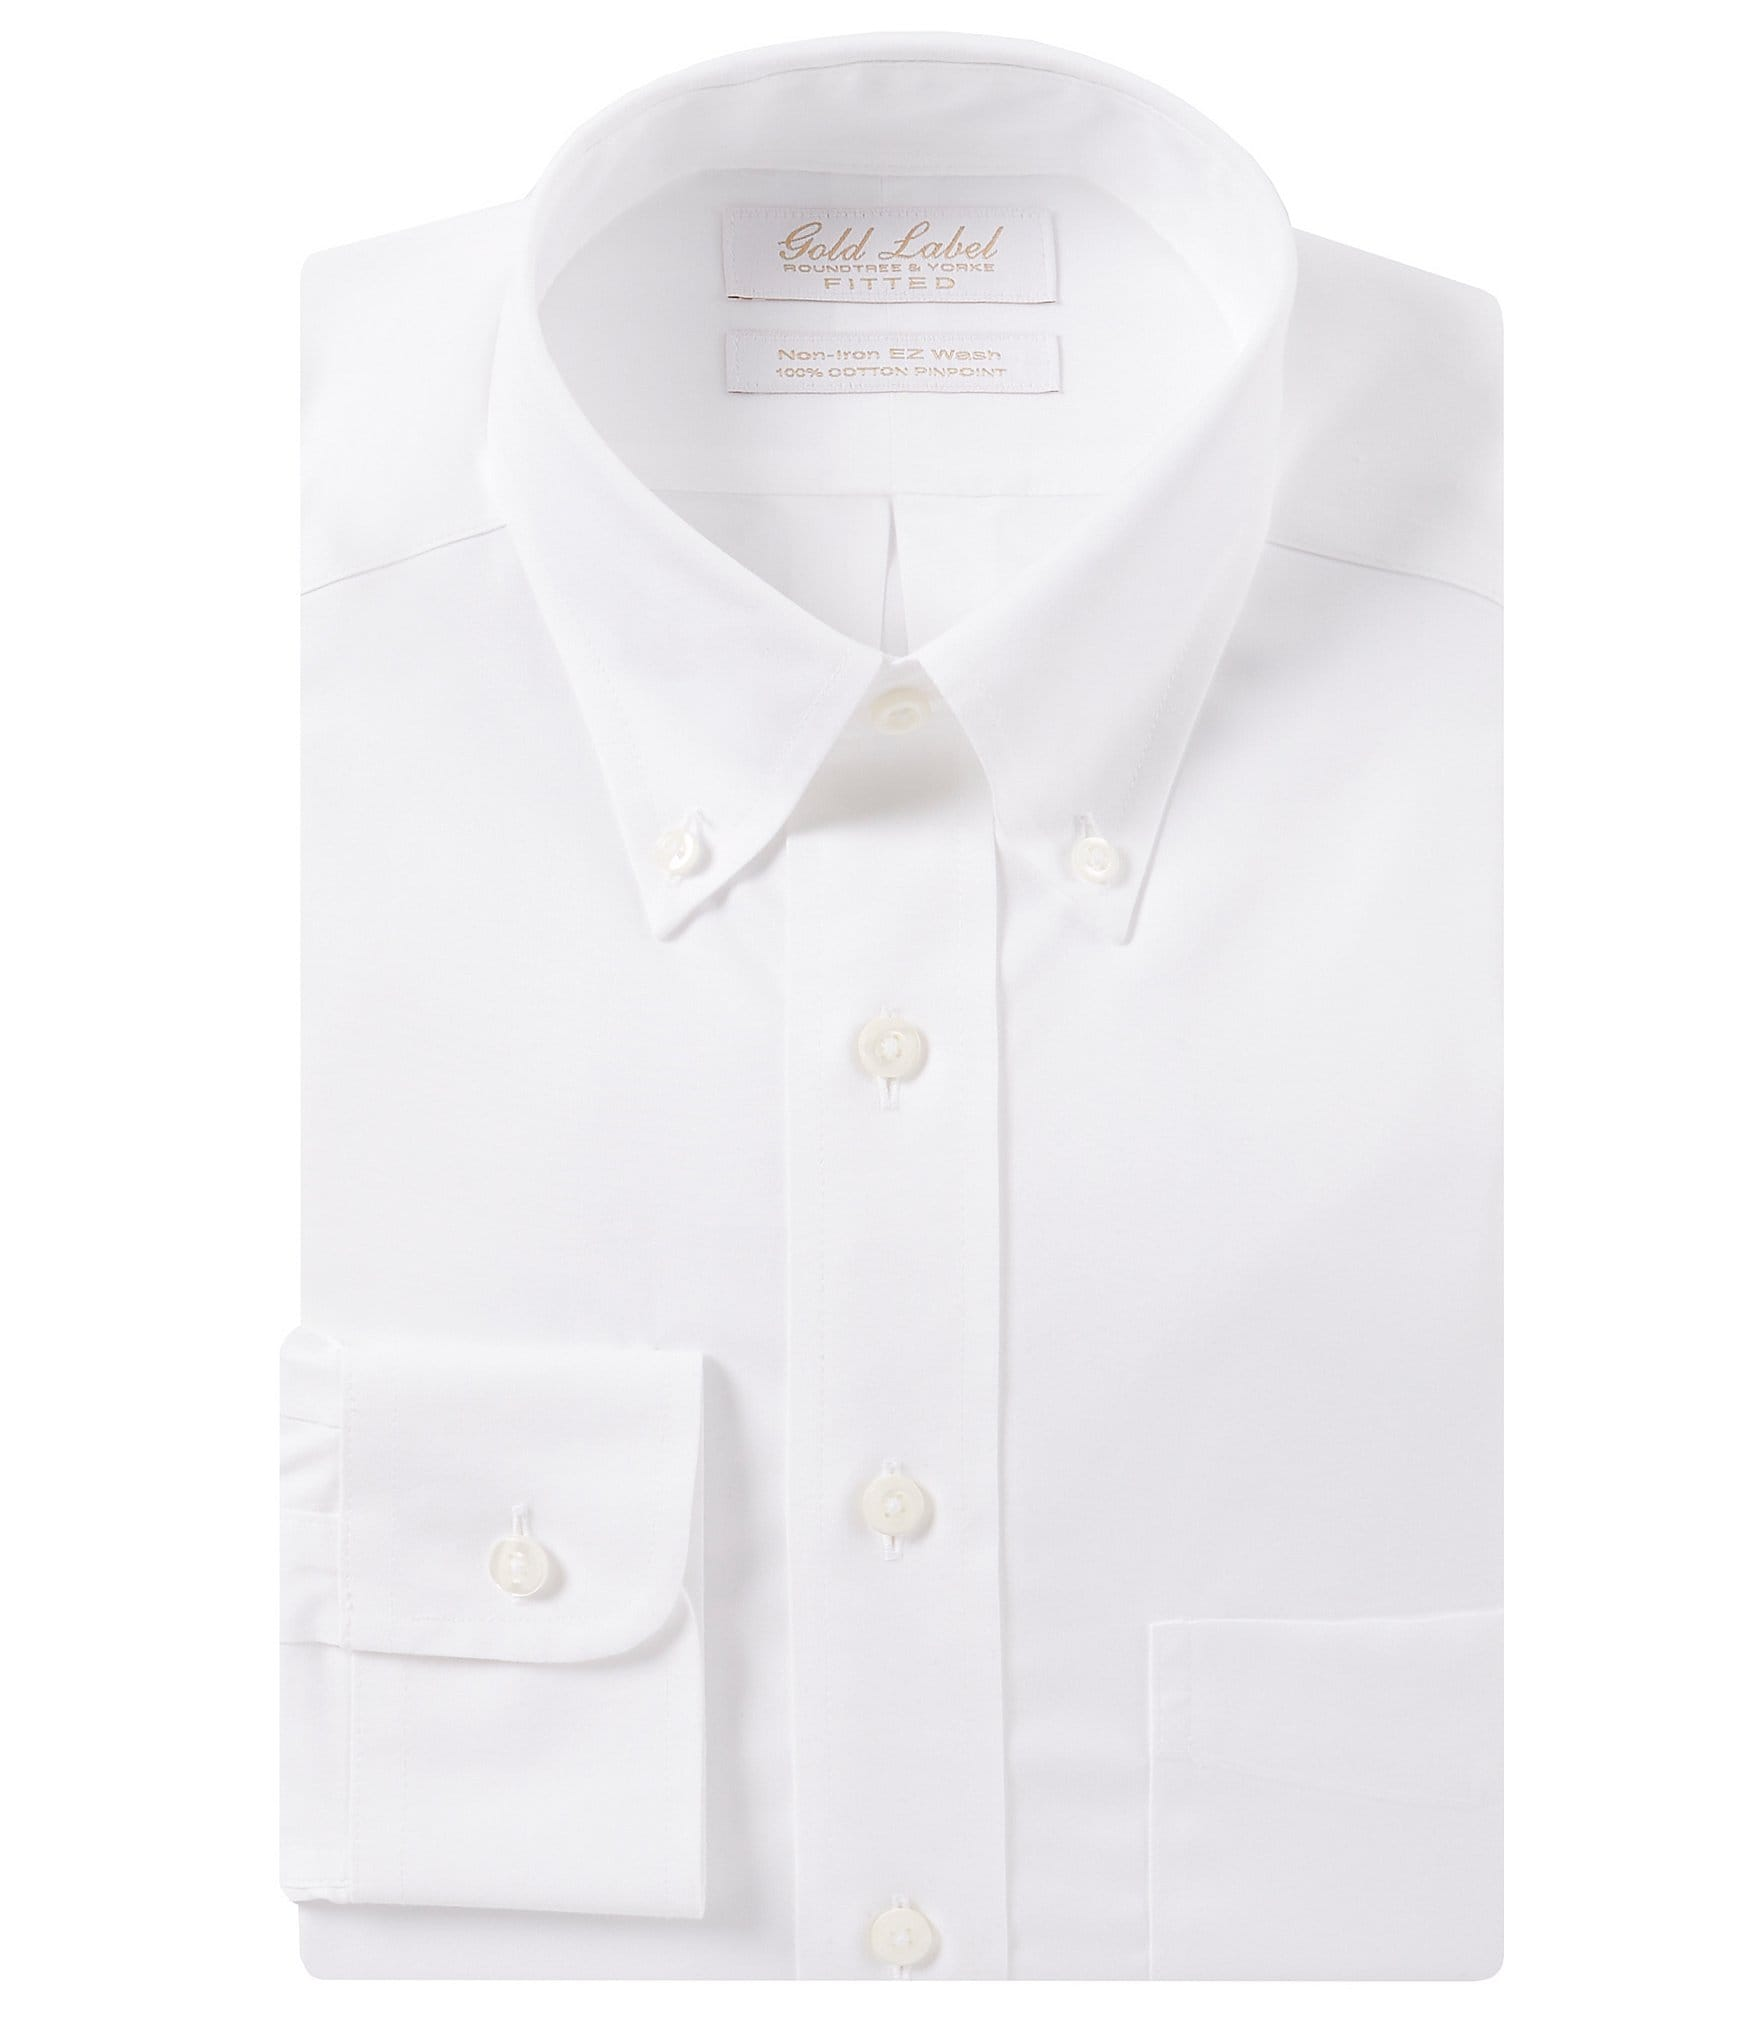 Gold Label Roundtree Yorke Non Iron Fitted Button Down